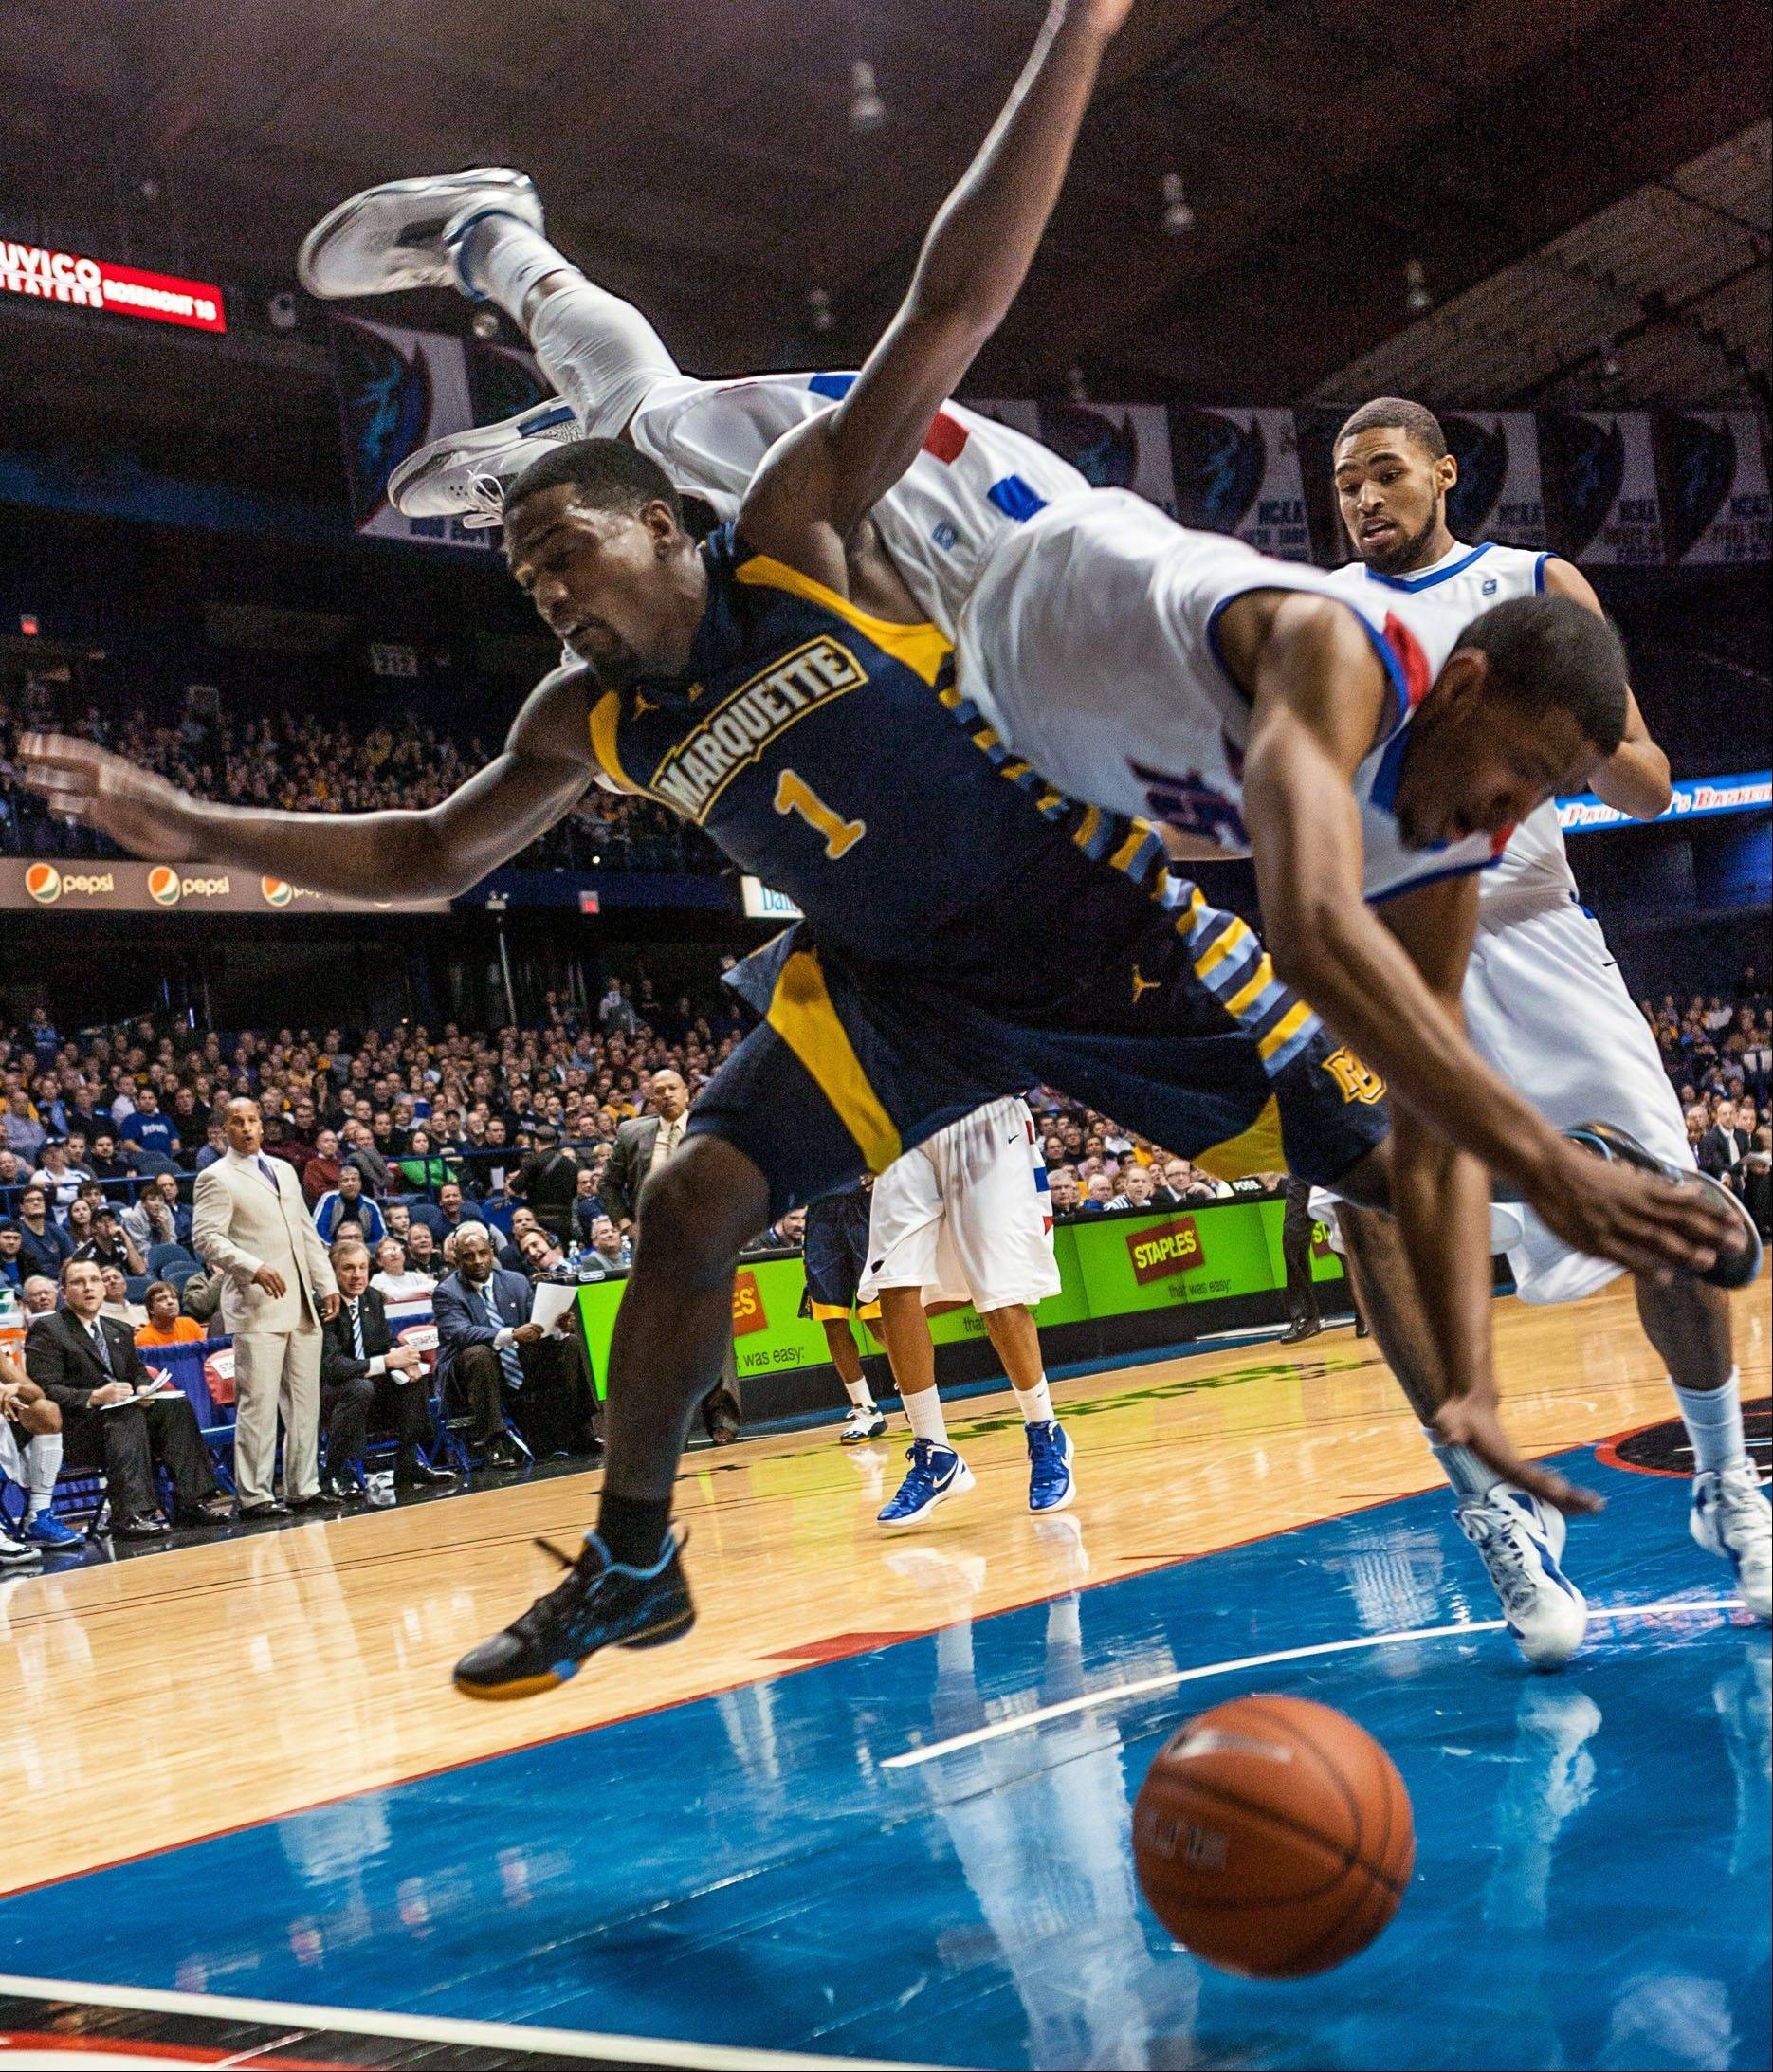 DePaul's Mose Morgan goes over the back of Marquette's Darius Johnson-Odom while trying to block his shot during the first half of an NCAA college basketball game Monday in Rosemont.